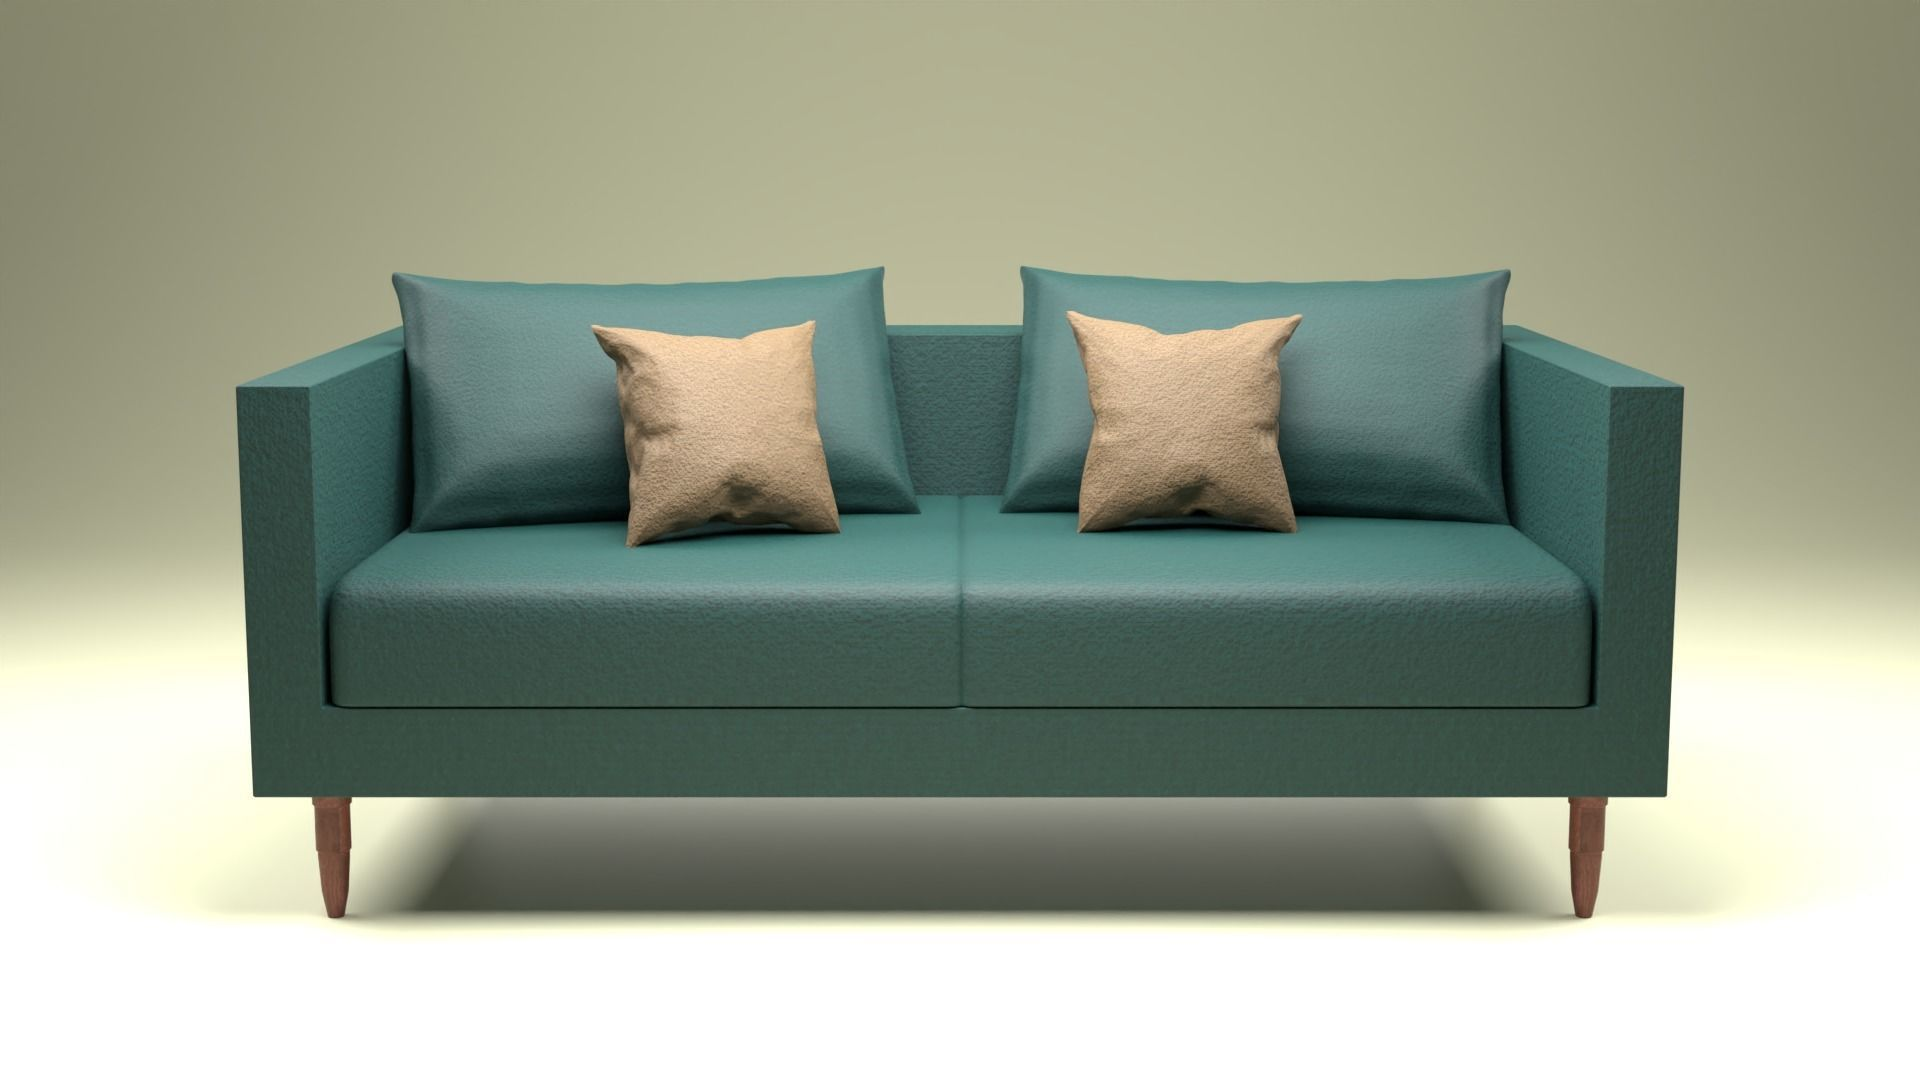 Sofa Set with PBR Textures 2 3D model | CGTrader